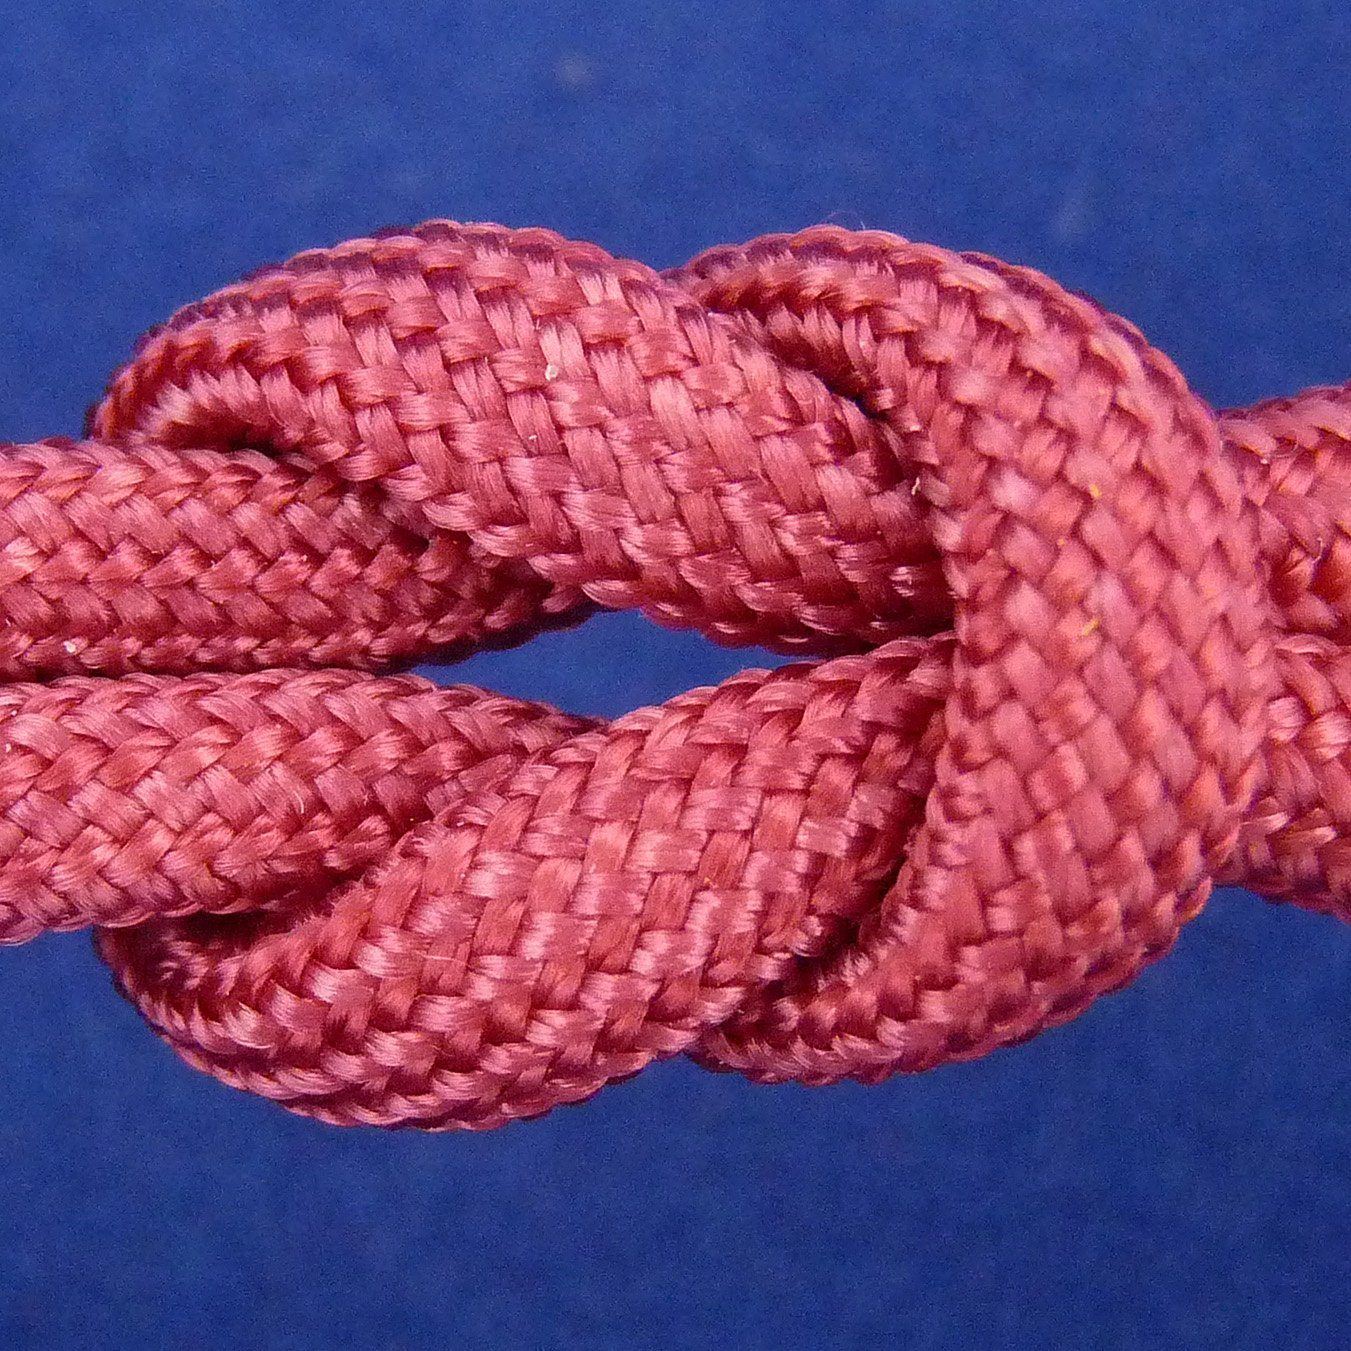 MilSpec Paracord Red 8-Strand 55 ft. Hank. Guaranteed MIL-C-5040H Compliant, Military Survival 550 Parachute Cord, Type III. Made in USA. 100% Nylon, 600 Lb. Break Strength, 2 Free eBooks. by Paracord 550 Mil-Spec (TM) (Image #8)